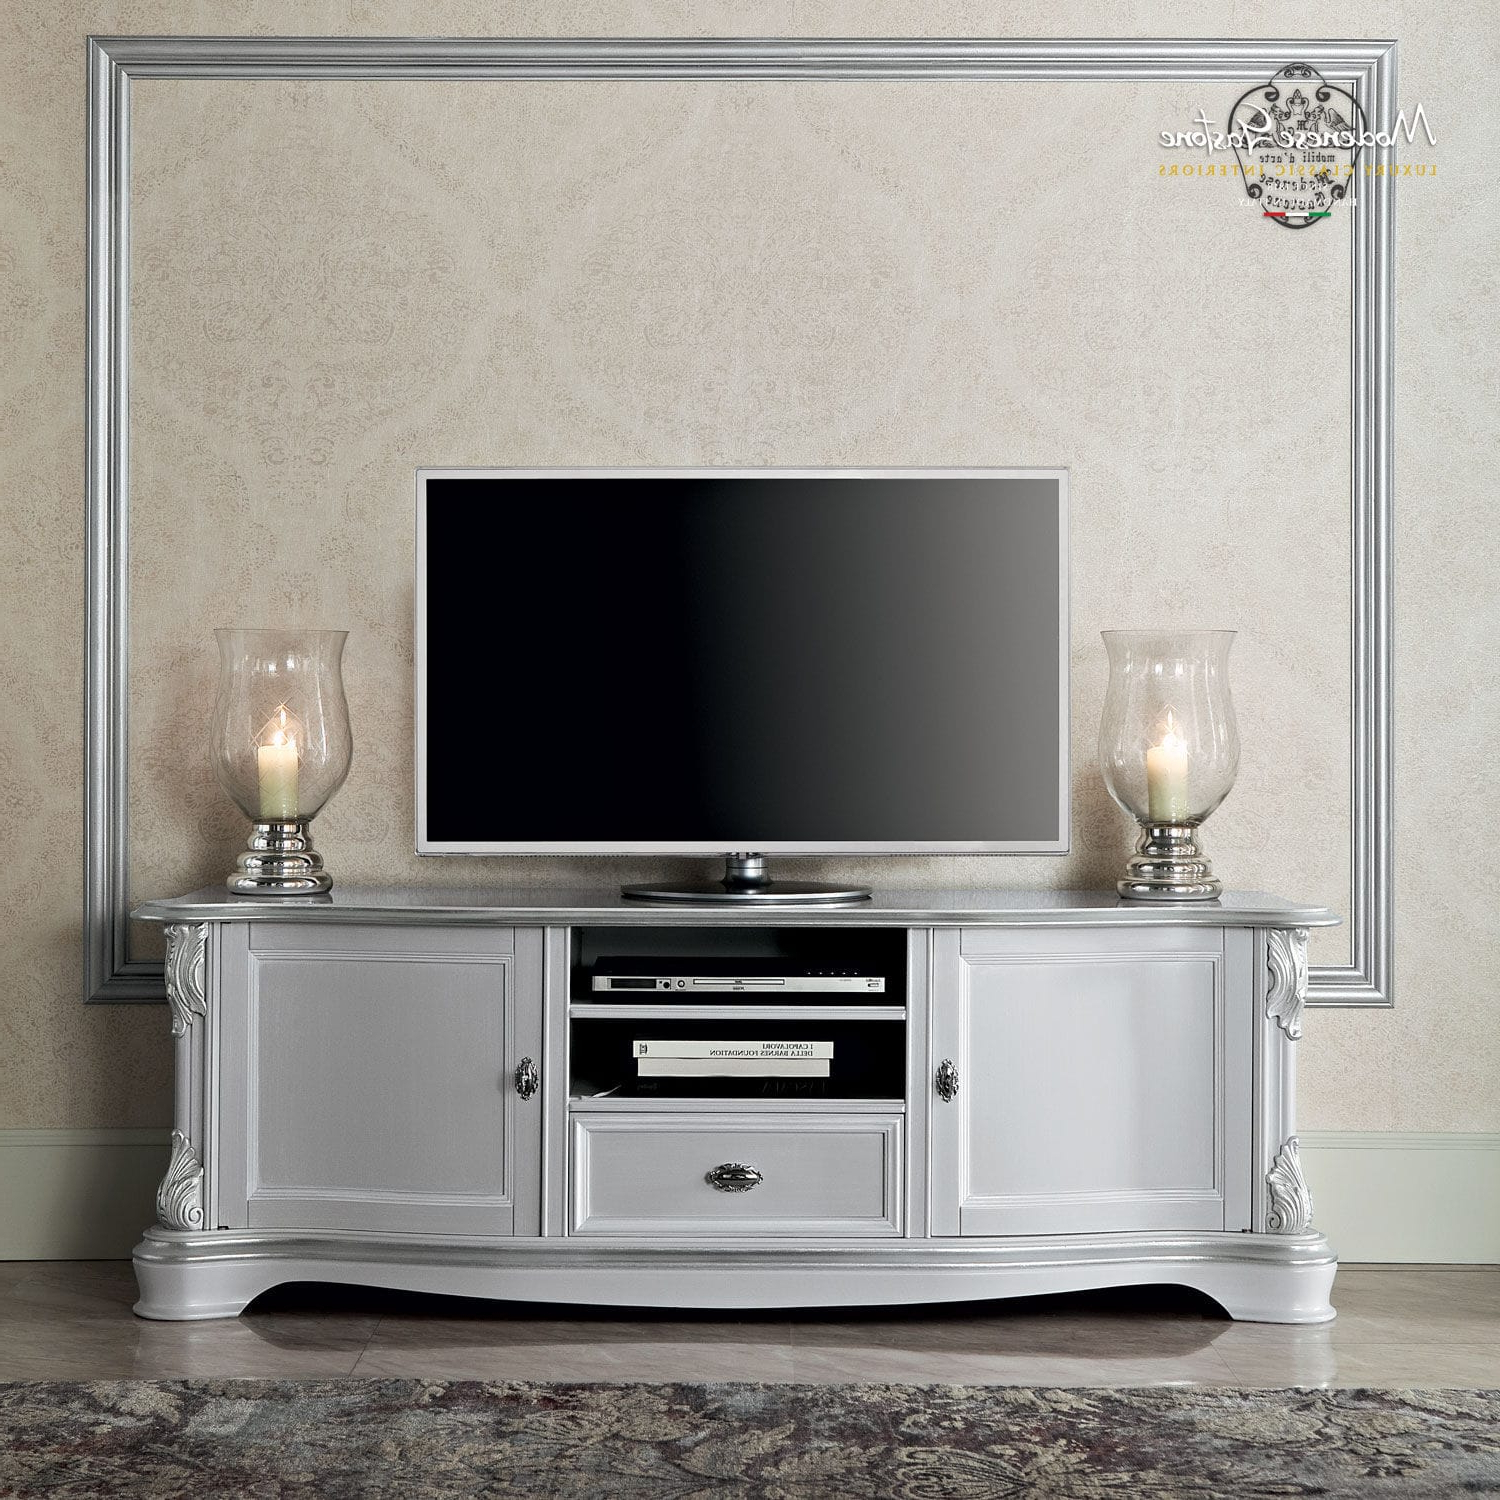 Widely Used Classic Tv Stands With Classic Tv Cabinet / Solid Wood – Bella Vita – Modenese Gastone (View 20 of 20)